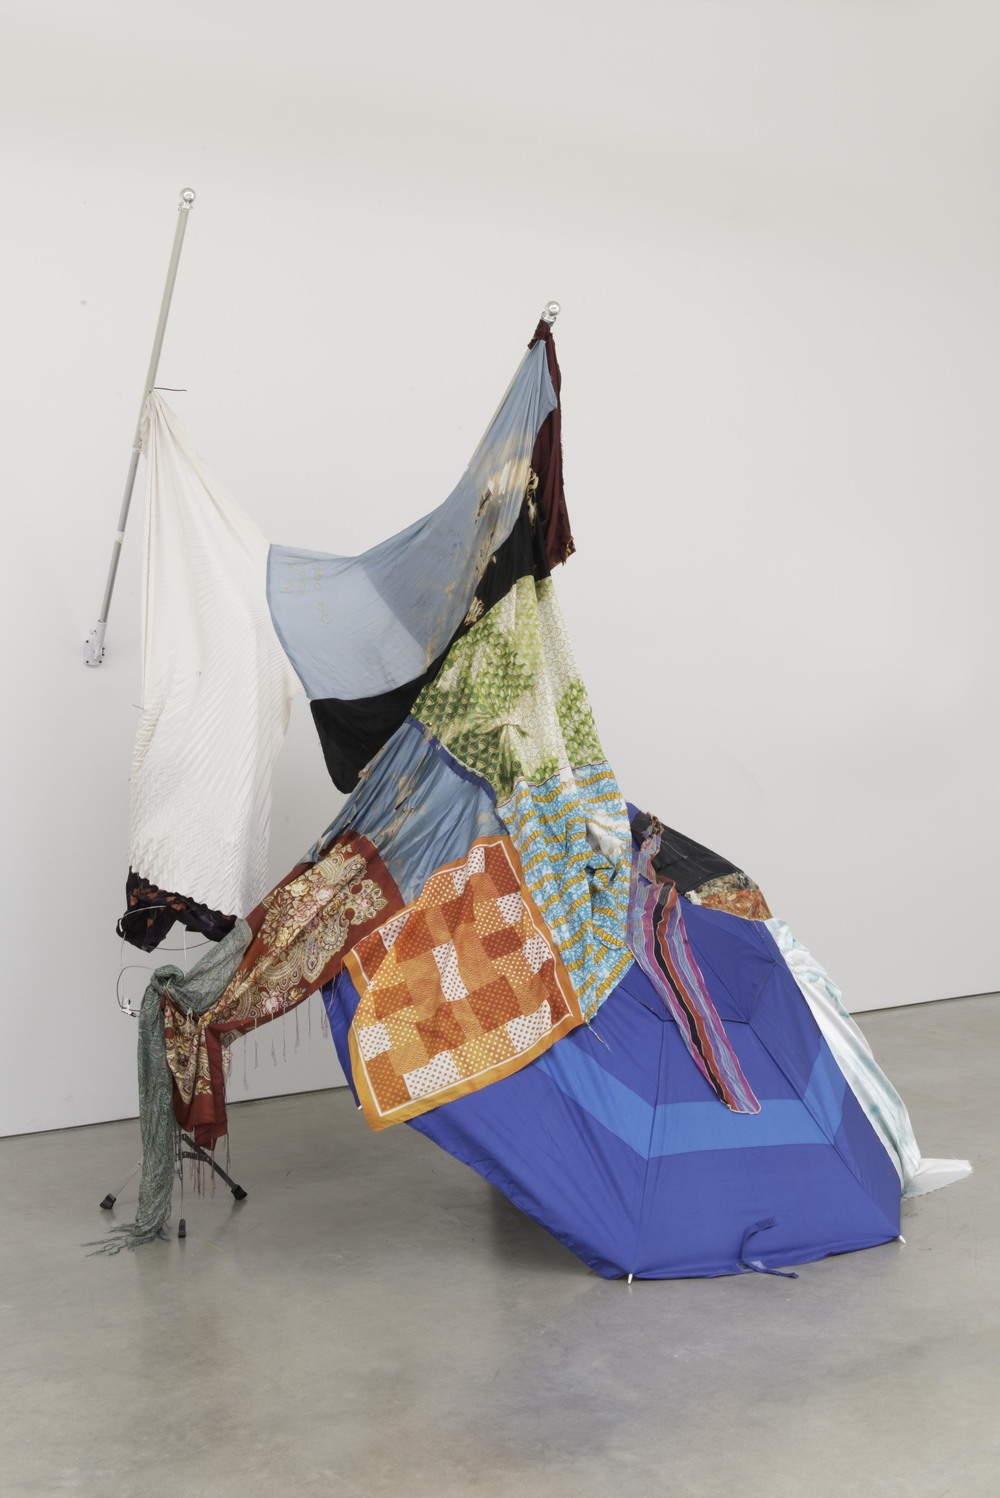 Eric Mack Newdaline 2016 Two flagpoles, umbrella, silk, cotton, polyester, aluminum, wood, zip ties, and straight pins 108 x 102 x 92 in (274.32h x 259.08w x 233.68d cm) ENM001